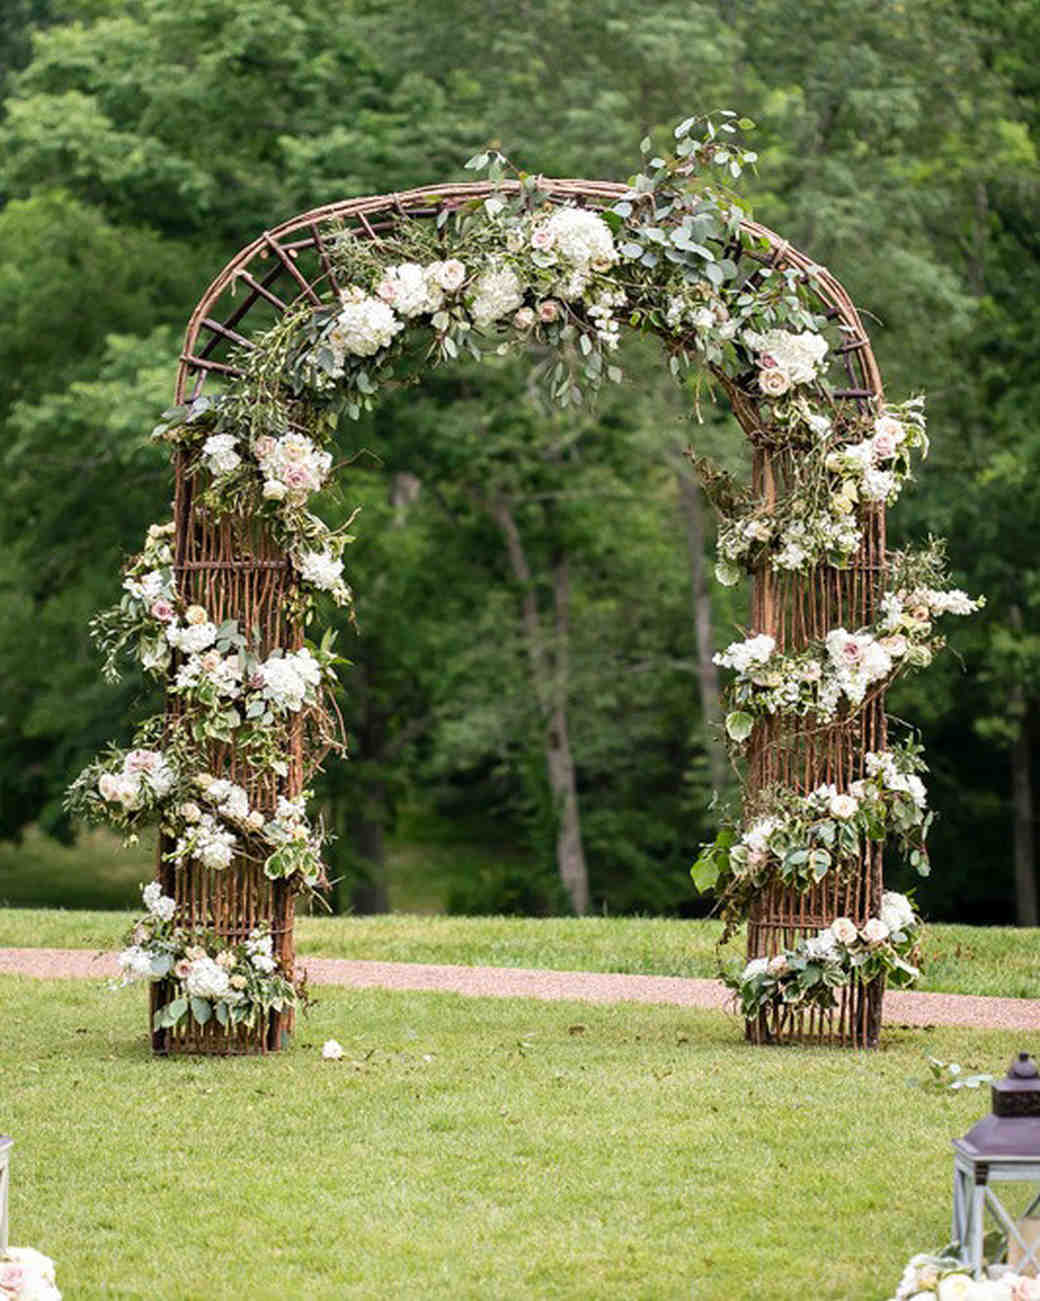 Wirey Wooden Chuppah with Wrap-Around Flowers and Foliage